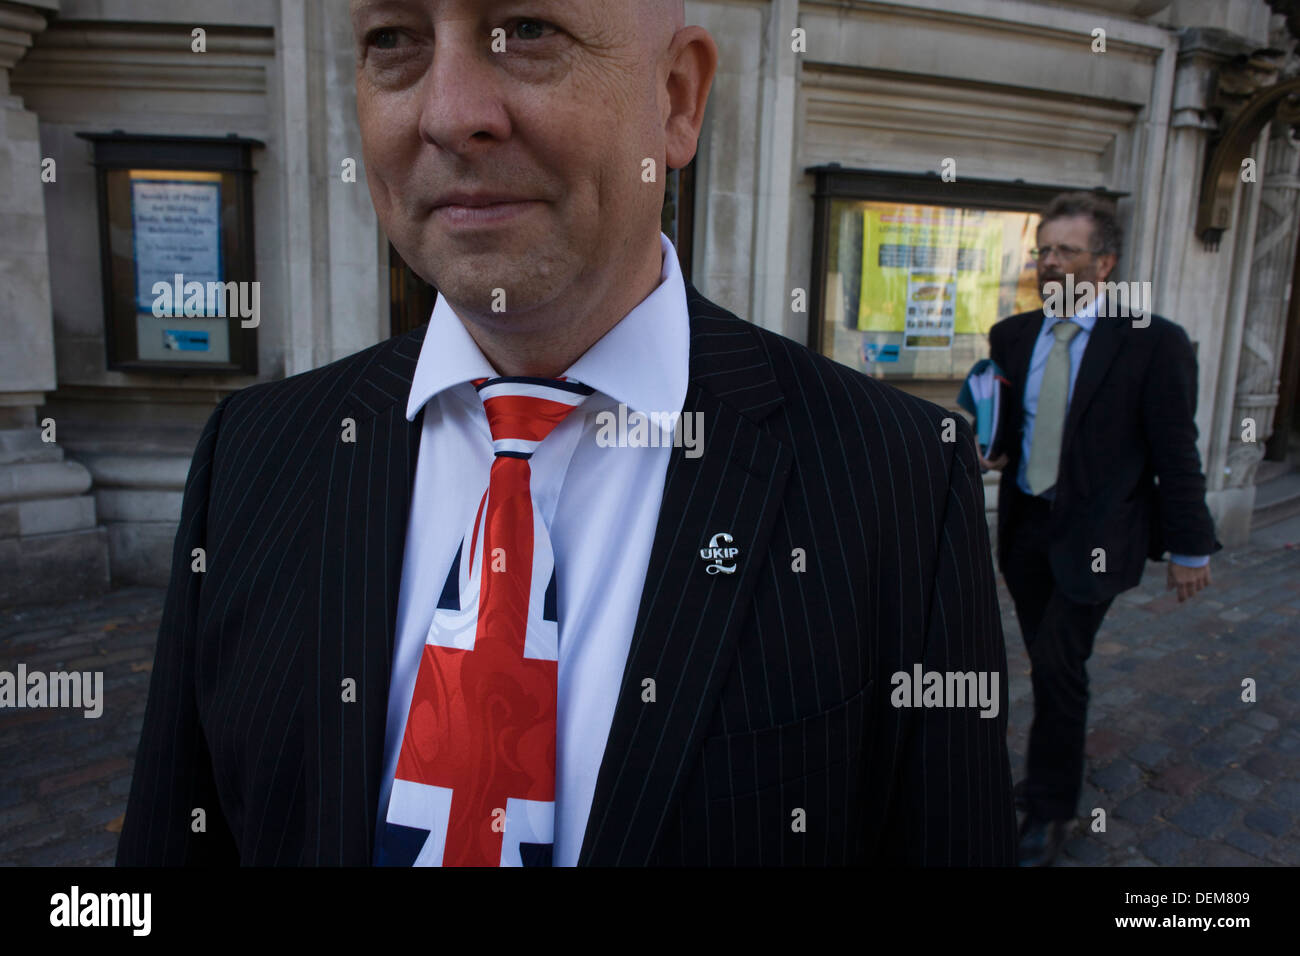 A Union jack tie and political pin portrait of UKIP (UK Independence Party) member from Aylesbury Vale District Stock Photo